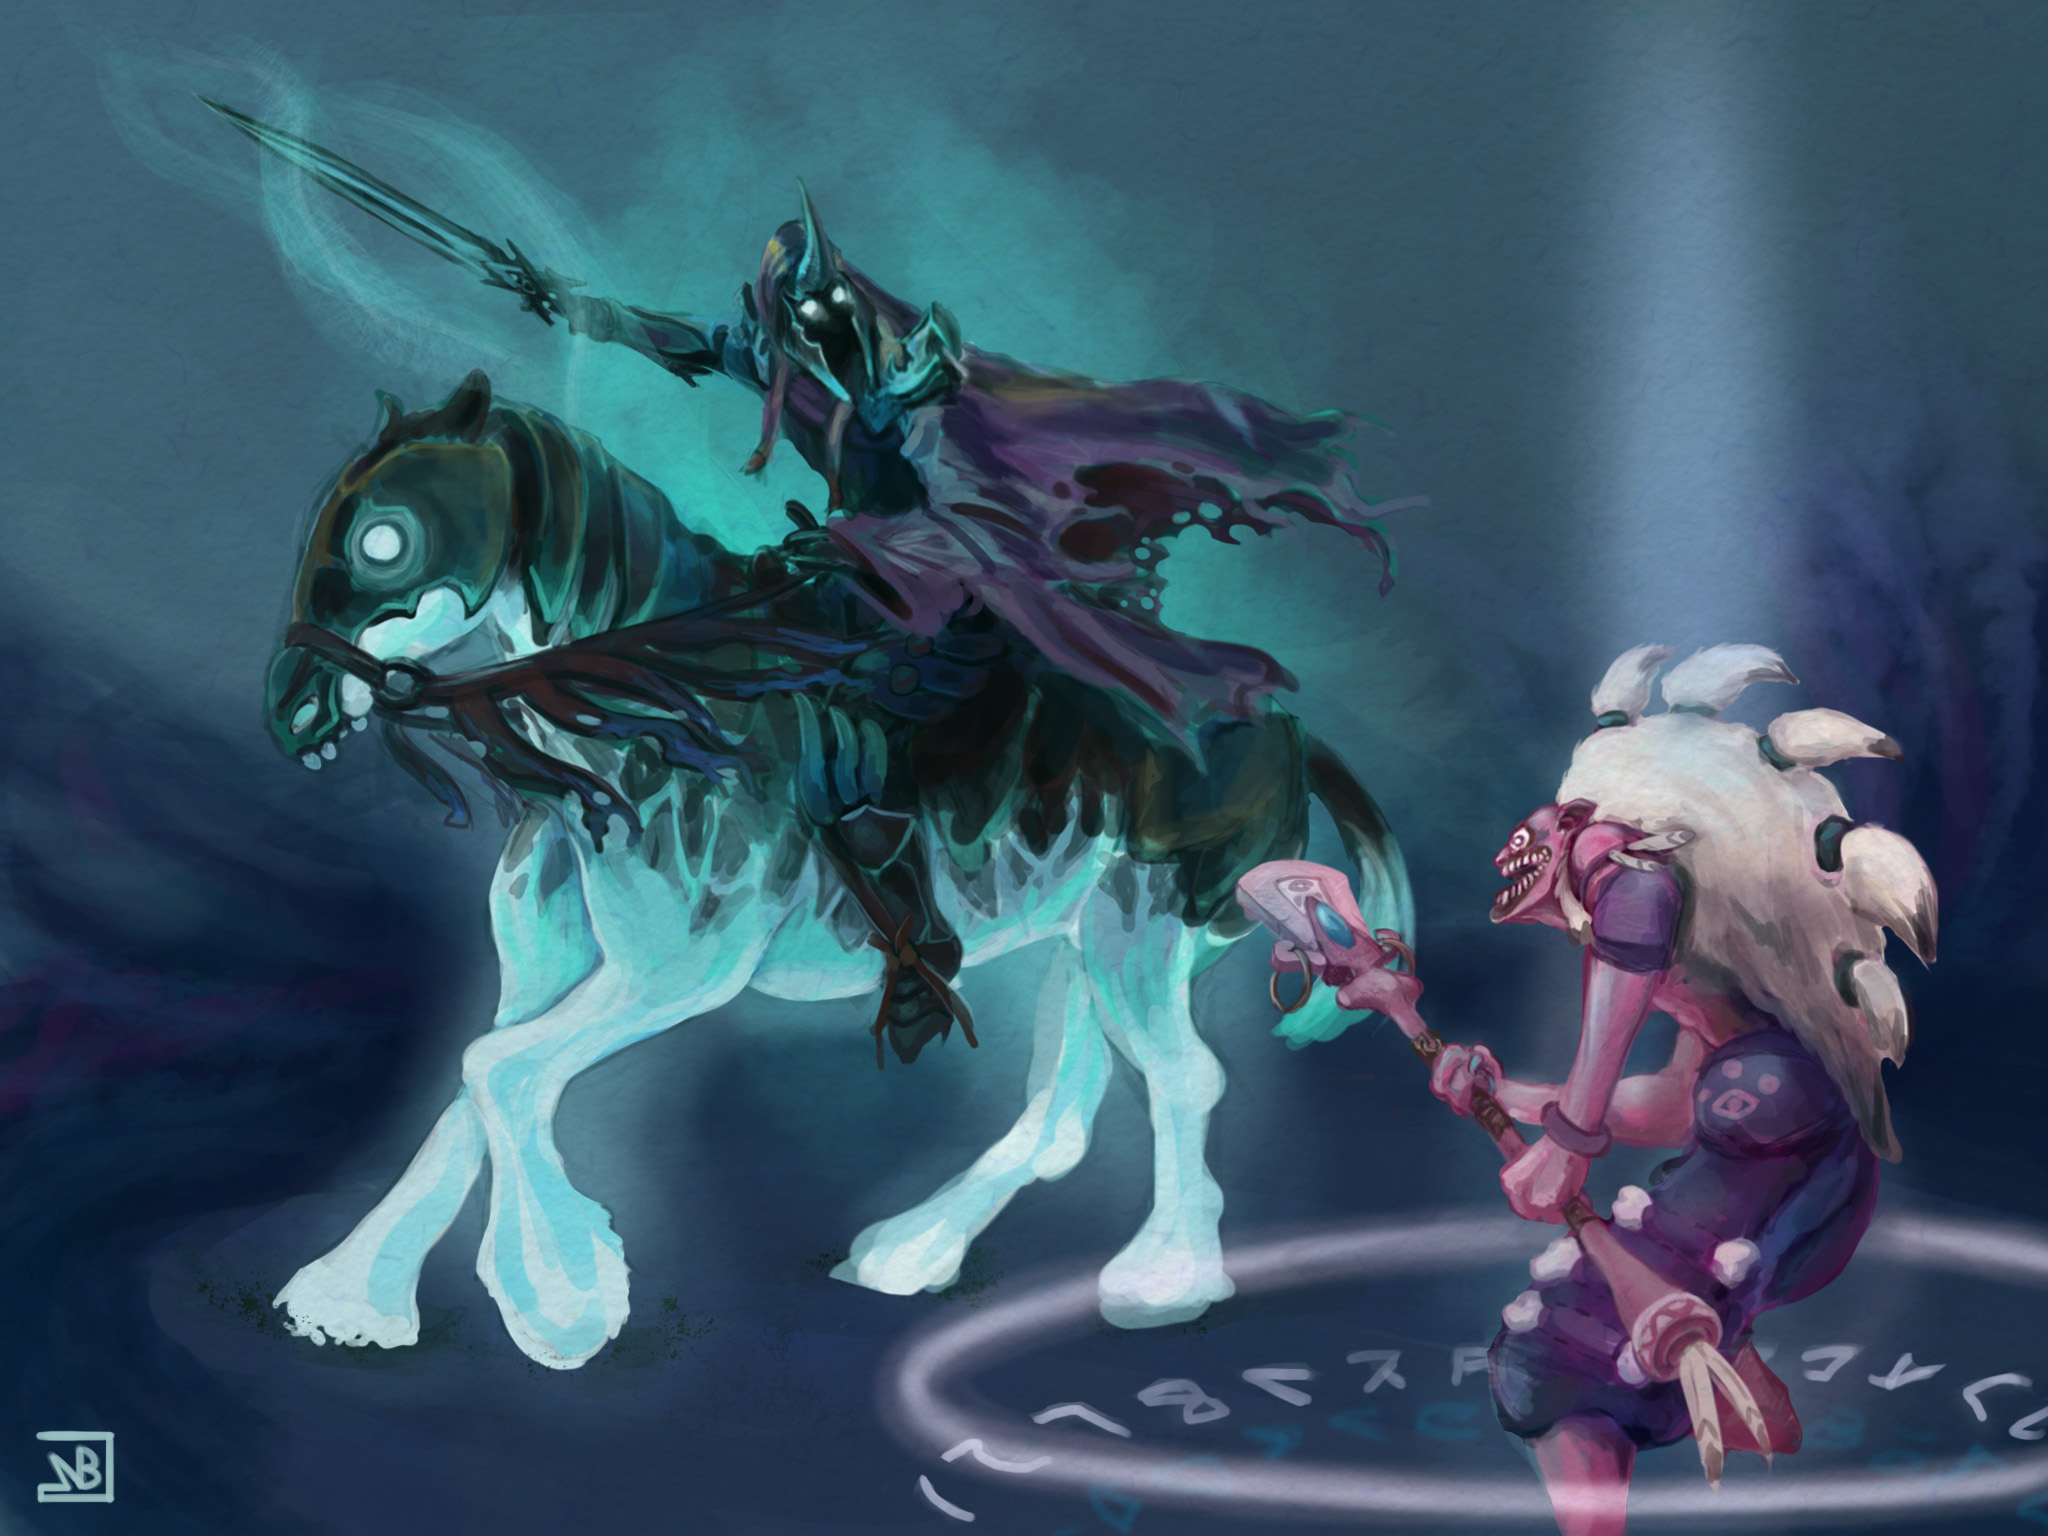 Dazzle & Abaddon wallpapers Dota 2 download